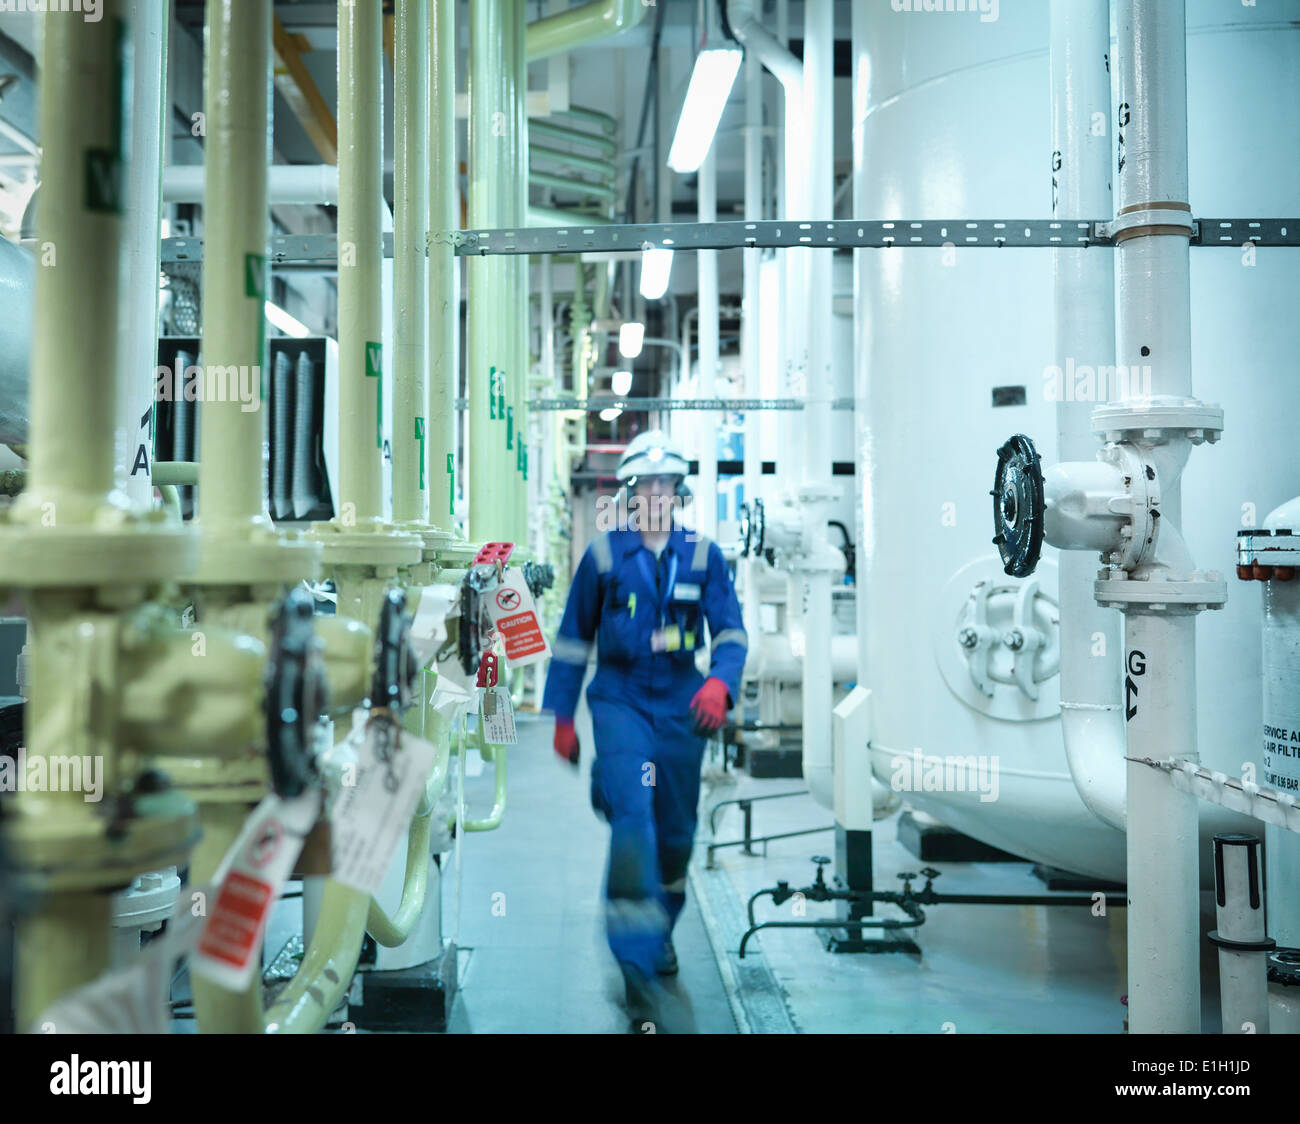 Engineer walking amongst pipes of nuclear power station Stock Photo